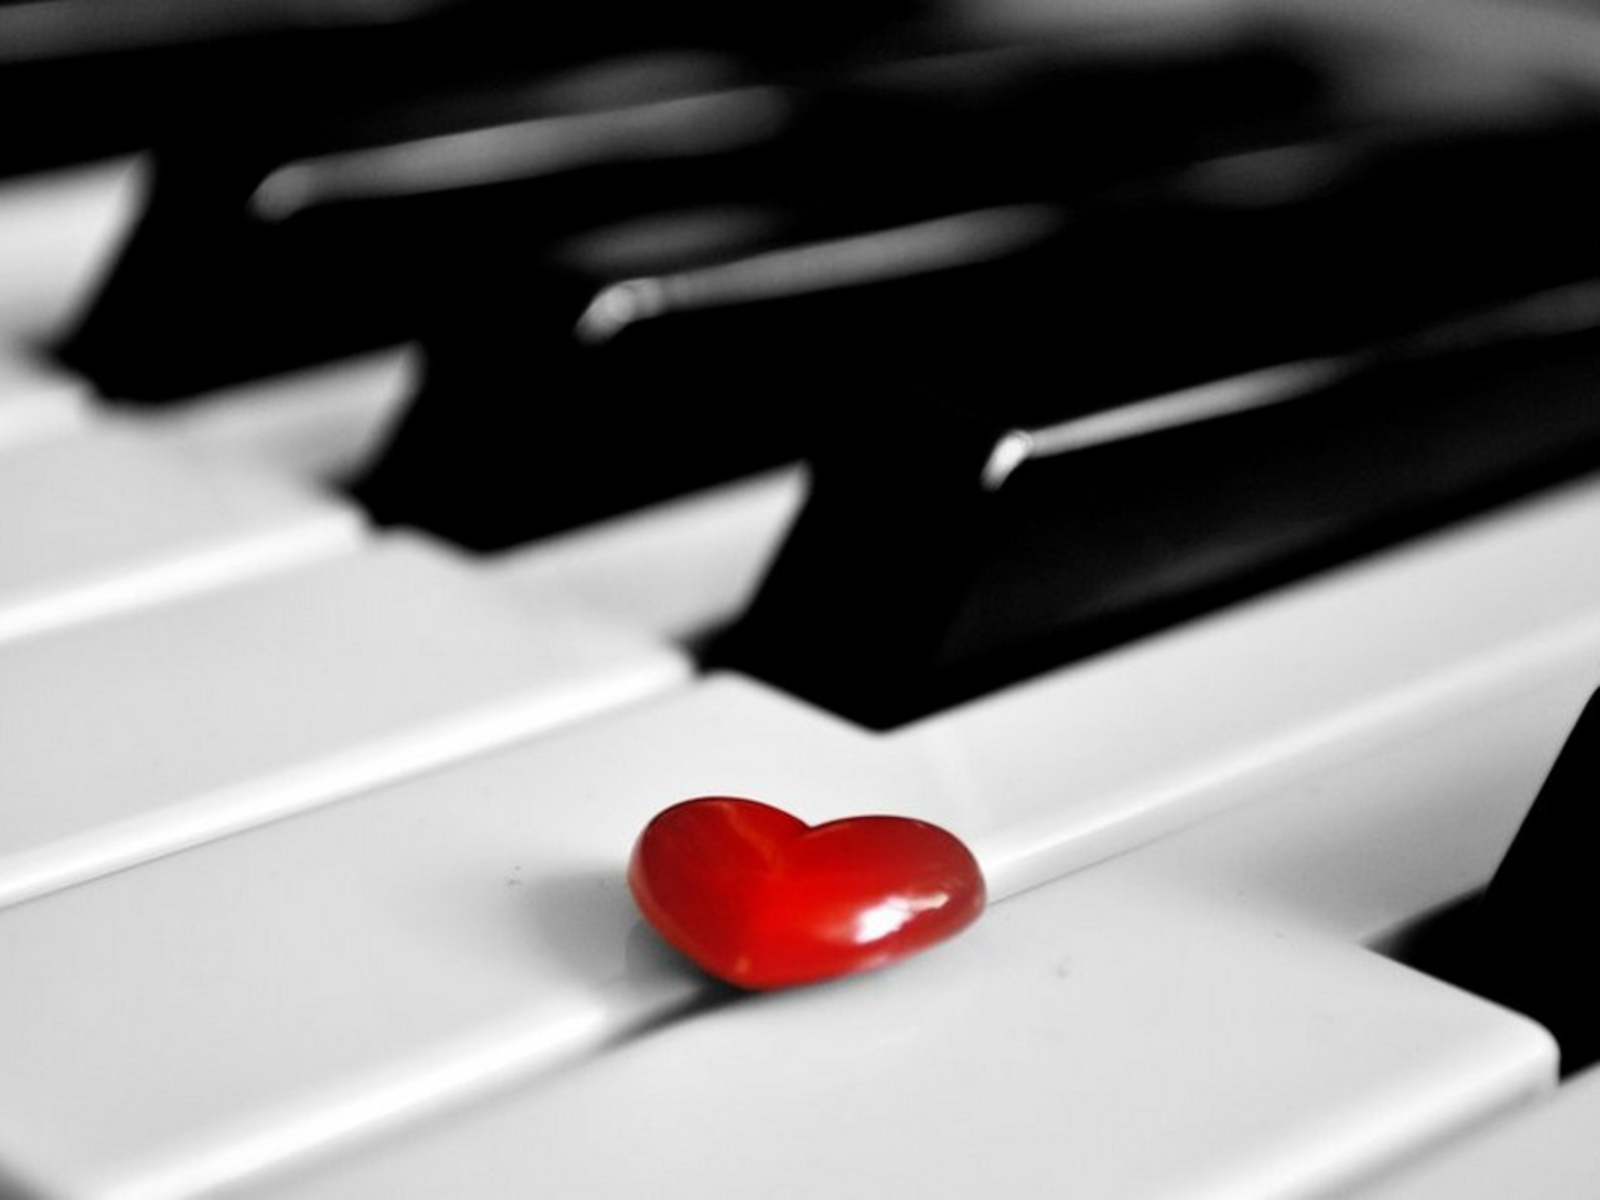 Fantastic Wallpaper Music Heart - red-heart-on-piano-beautiful-love-wallpaper-music-images-piano-wallpaper  Graphic_846048.jpg